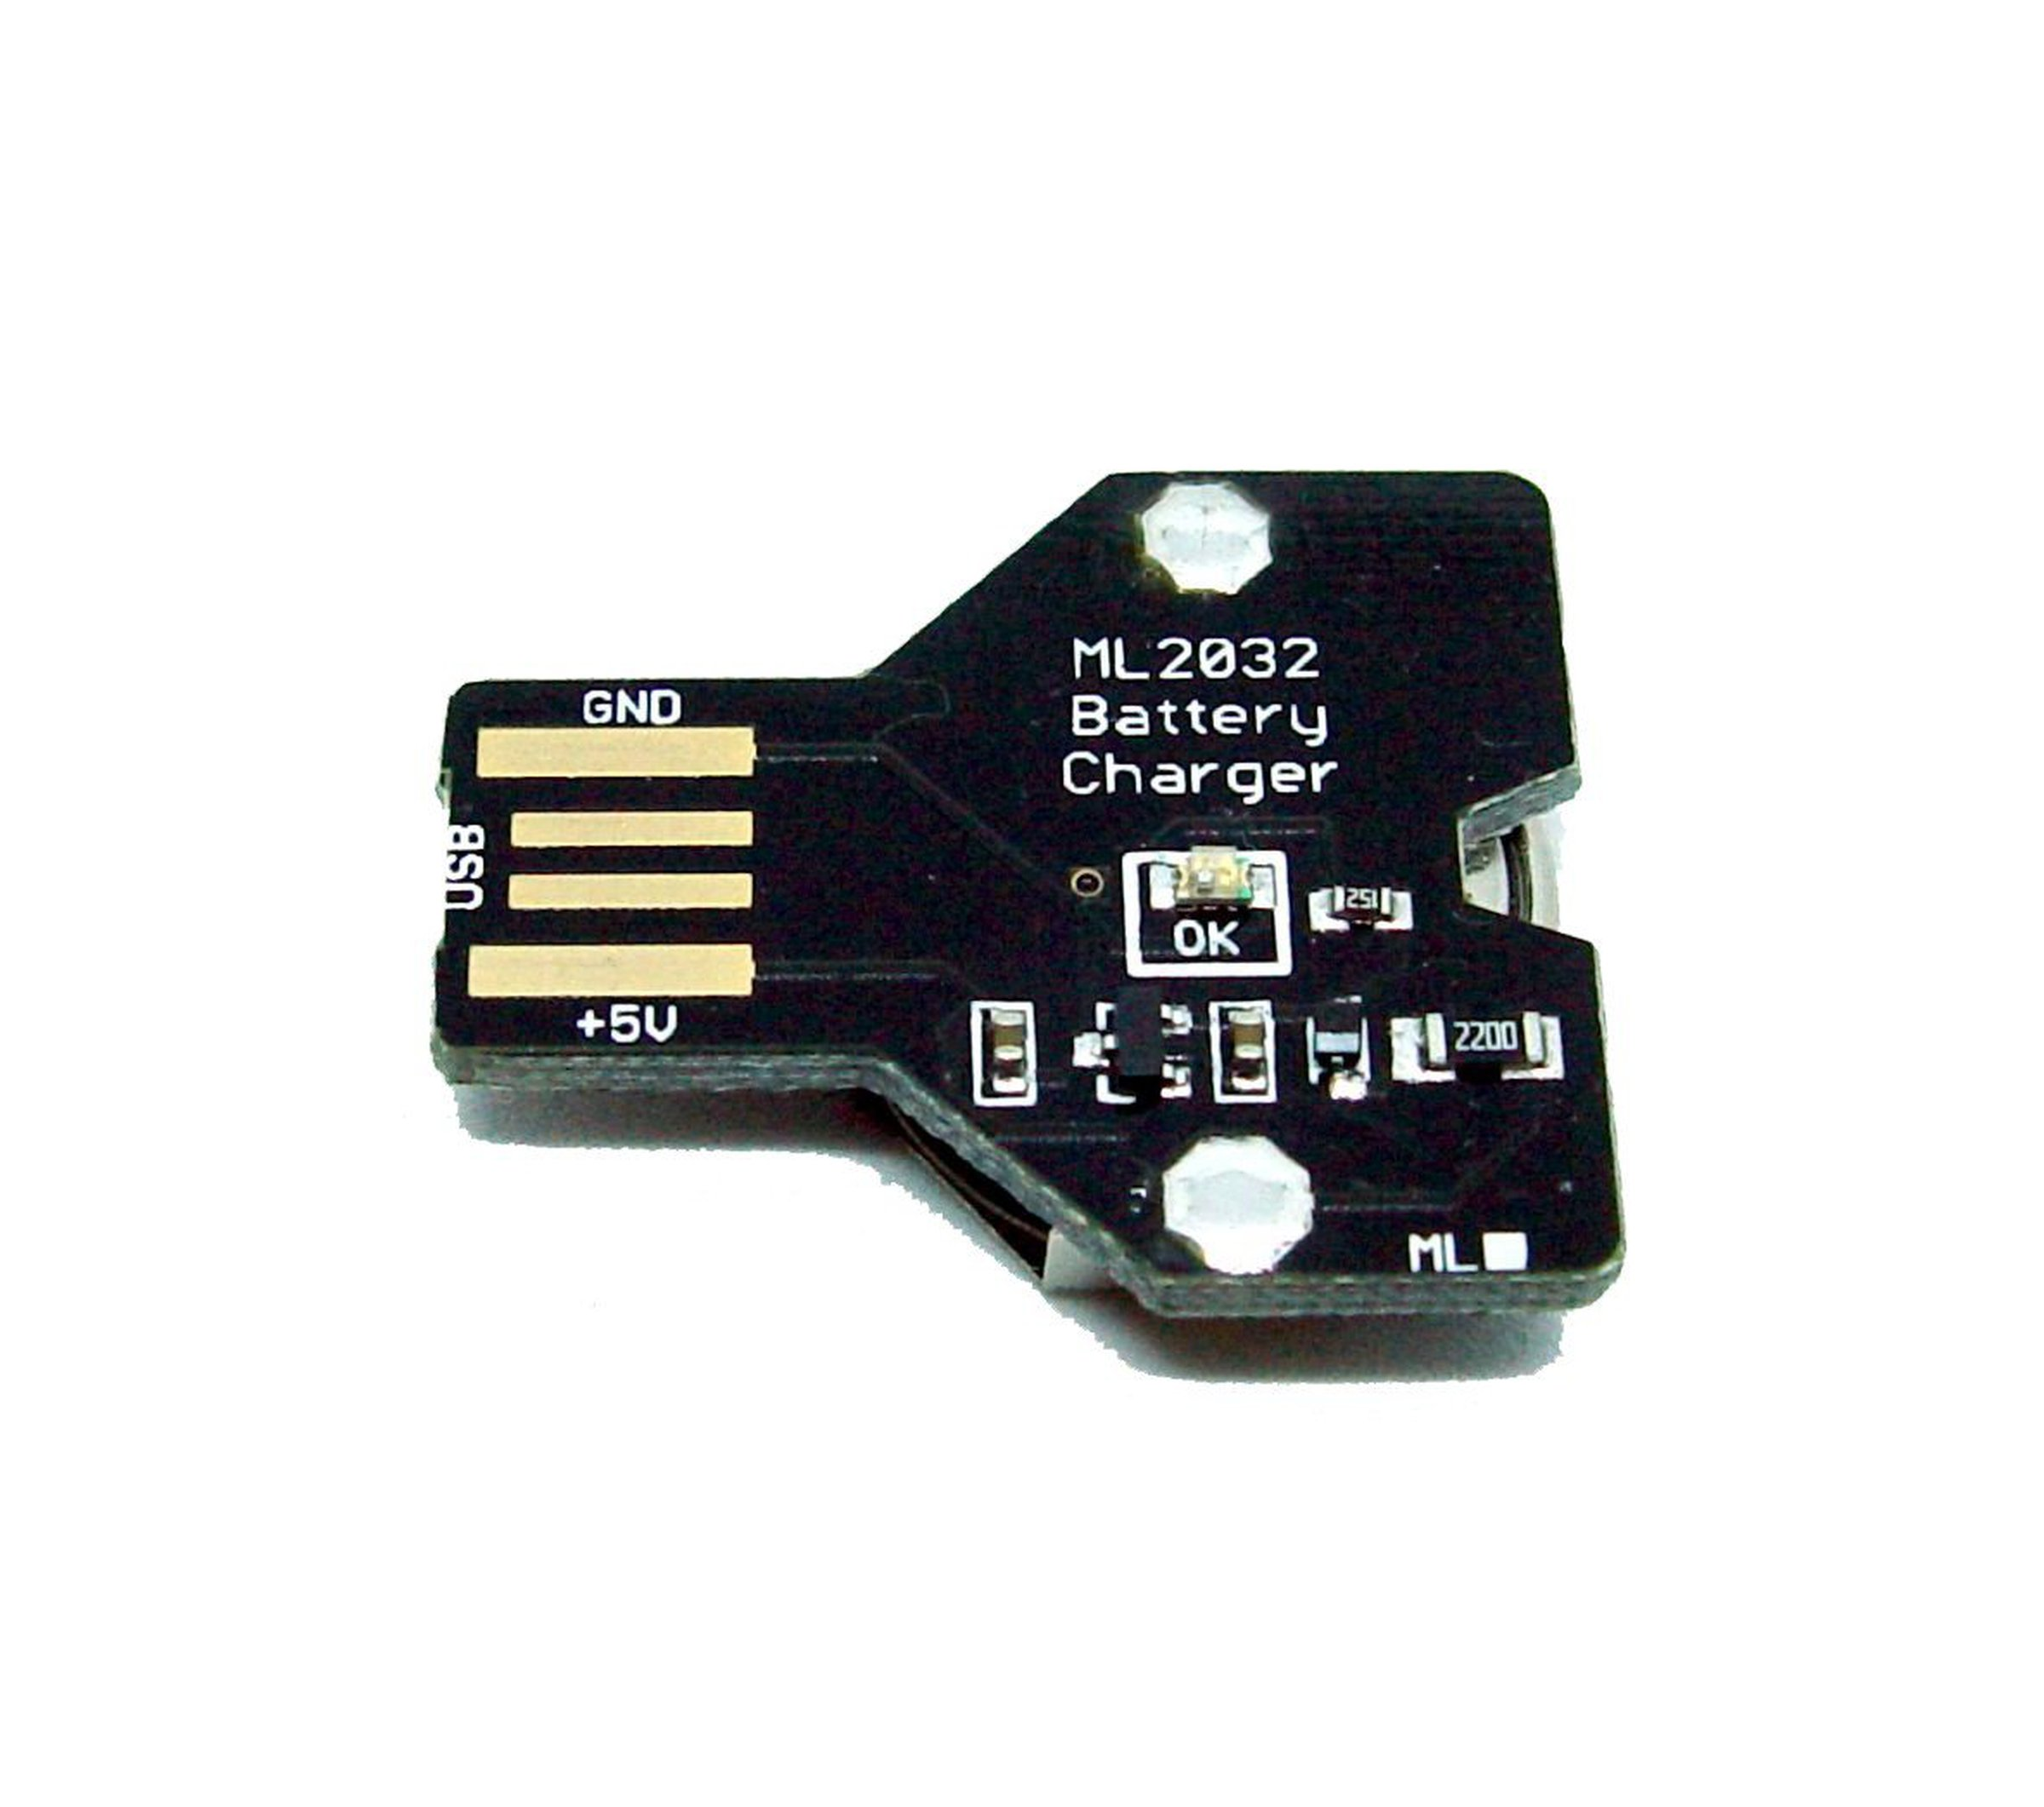 Usb Lithium Coin Cell Battery Charger Ml2032 From Pemi Technology On Simple And Utility Circuit Powersupply 1